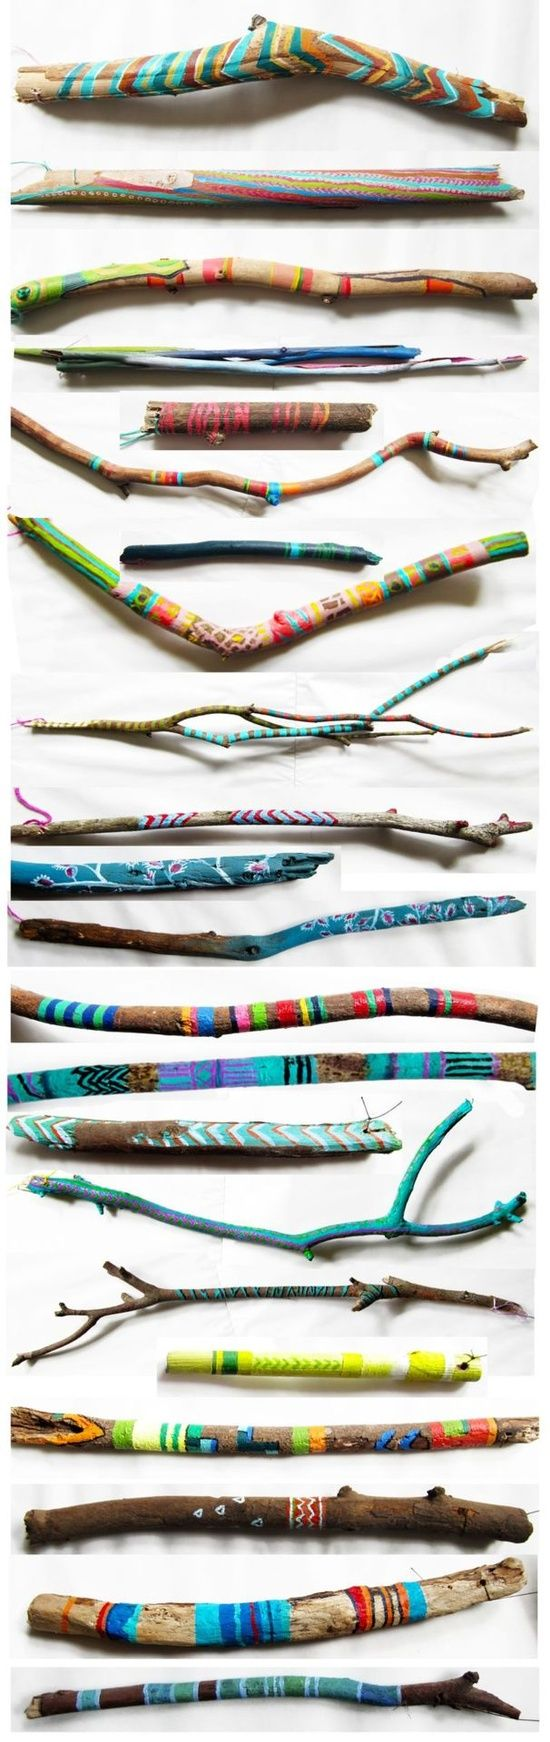 Painted twigs & driftwood. They look cute arranged in a mason jar or bottle! DIY - make a day out of it, go for a walk through the ravine collecting sticks, bring them home and paint them. Brennan would LOVE this!  @Kate Mazur Mazur Mazur Mazur Webster can we do this?!